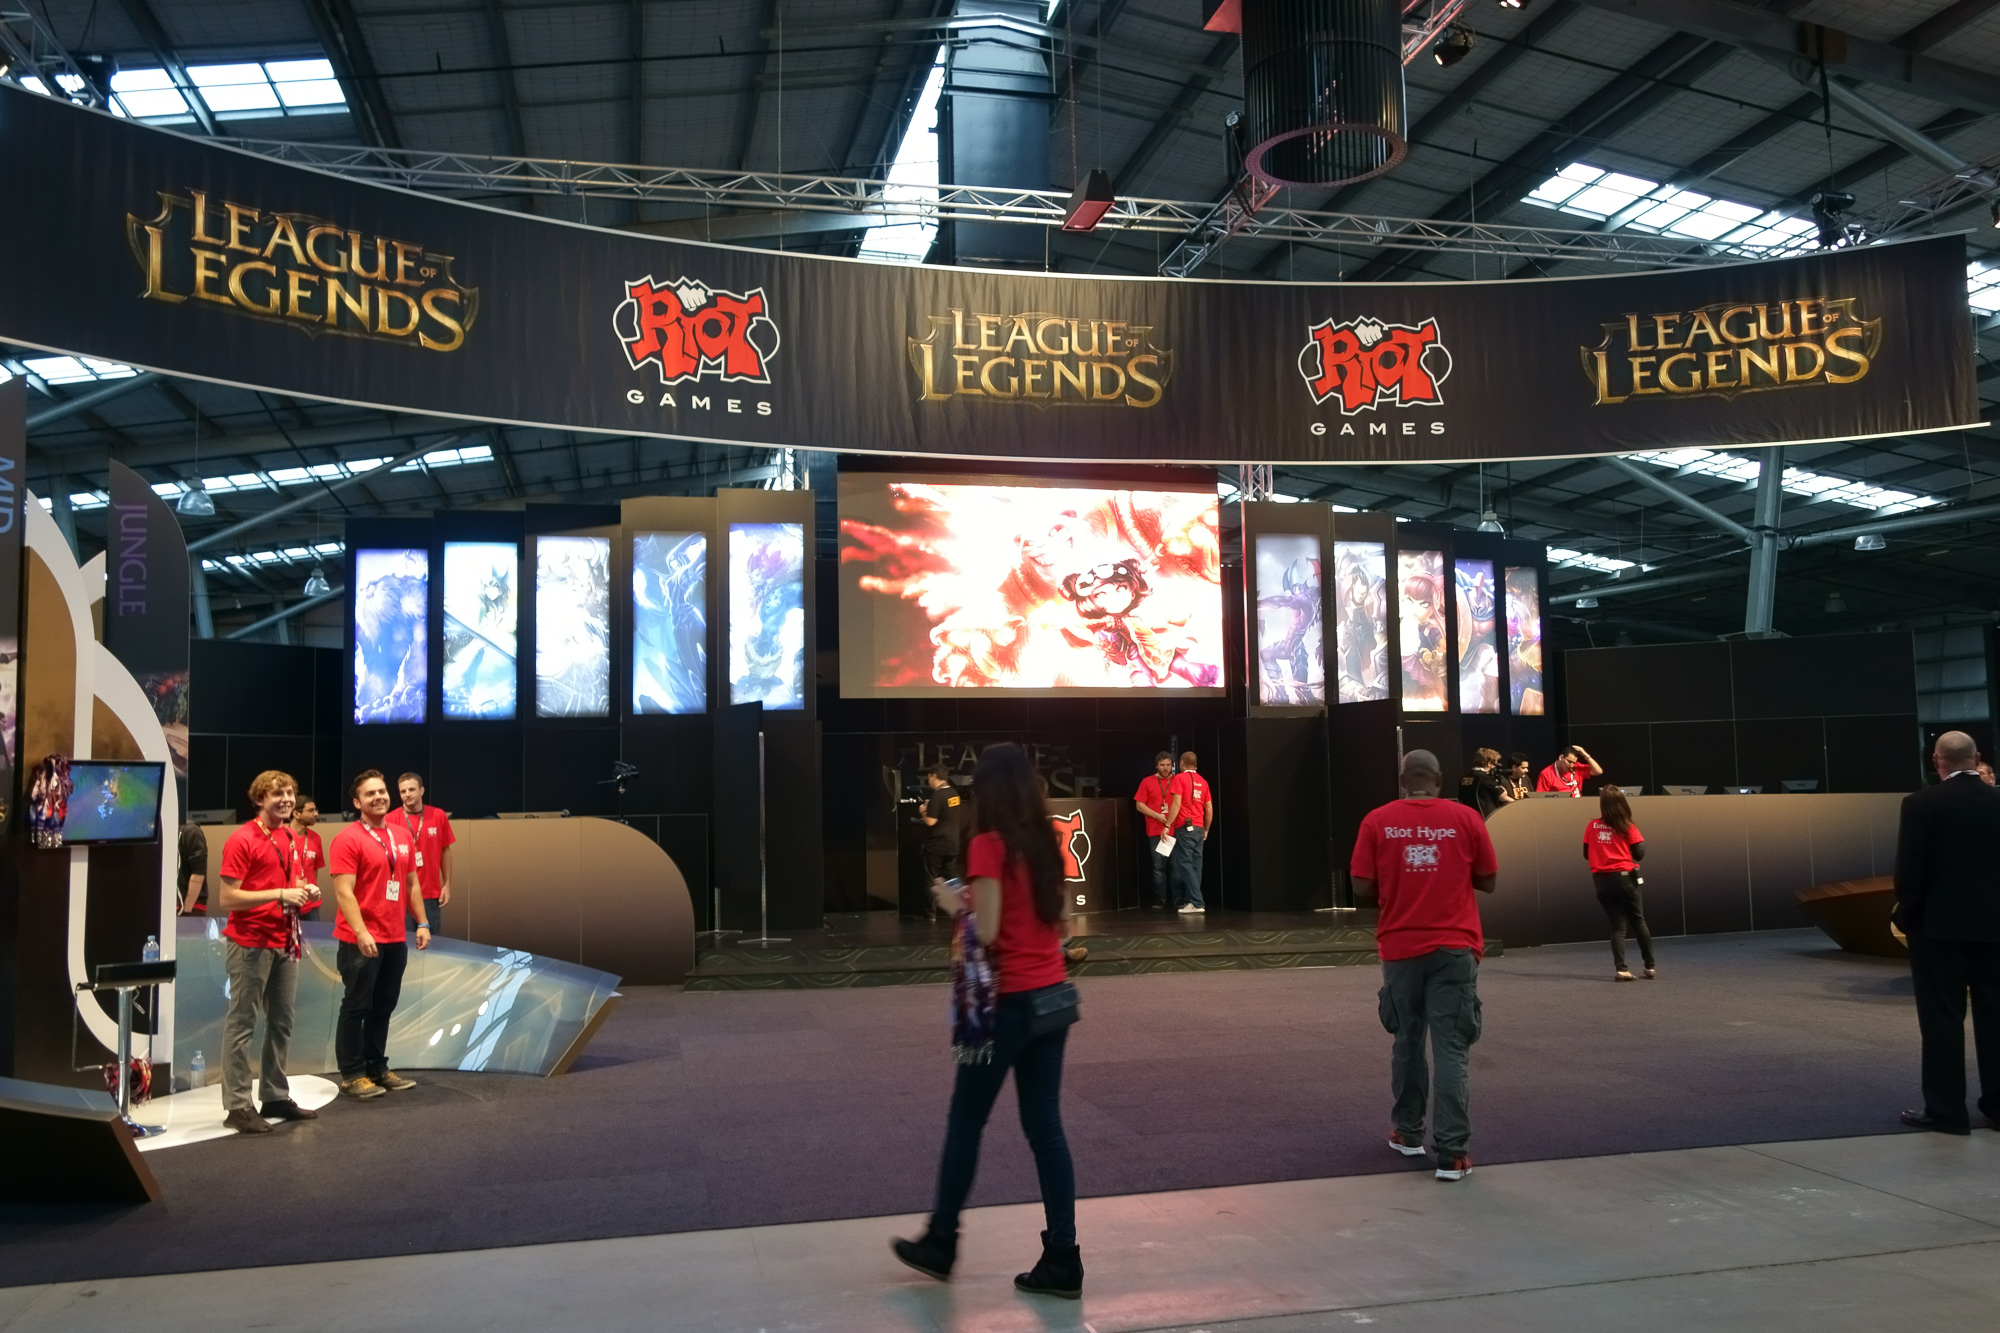 The League of Legends exhibit was never this empty again (this was taken before general admission)